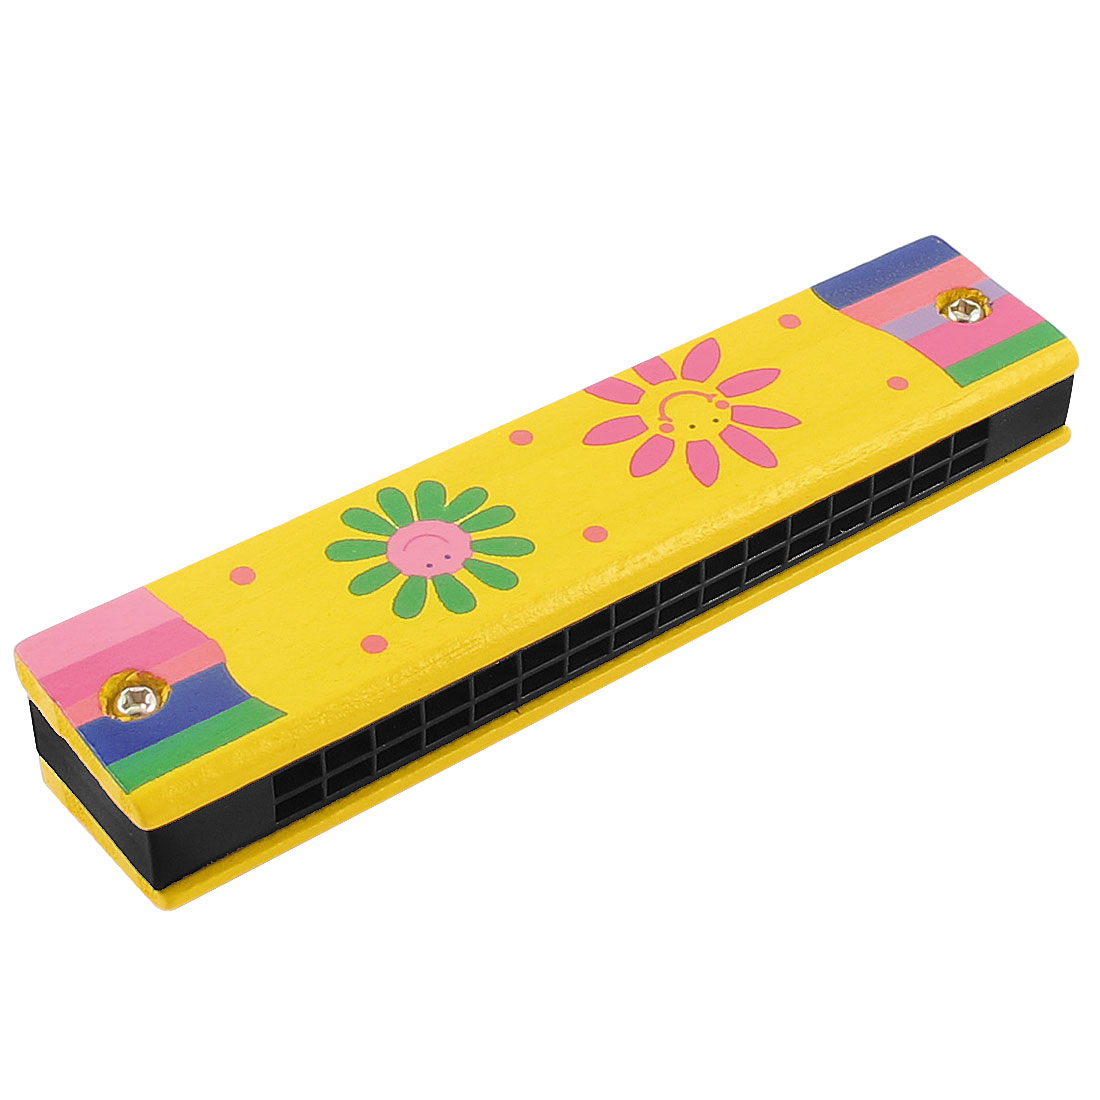 Smile Face Print Wood Dual Rows 32 Hole Harmonica Mouth Organ Yellow